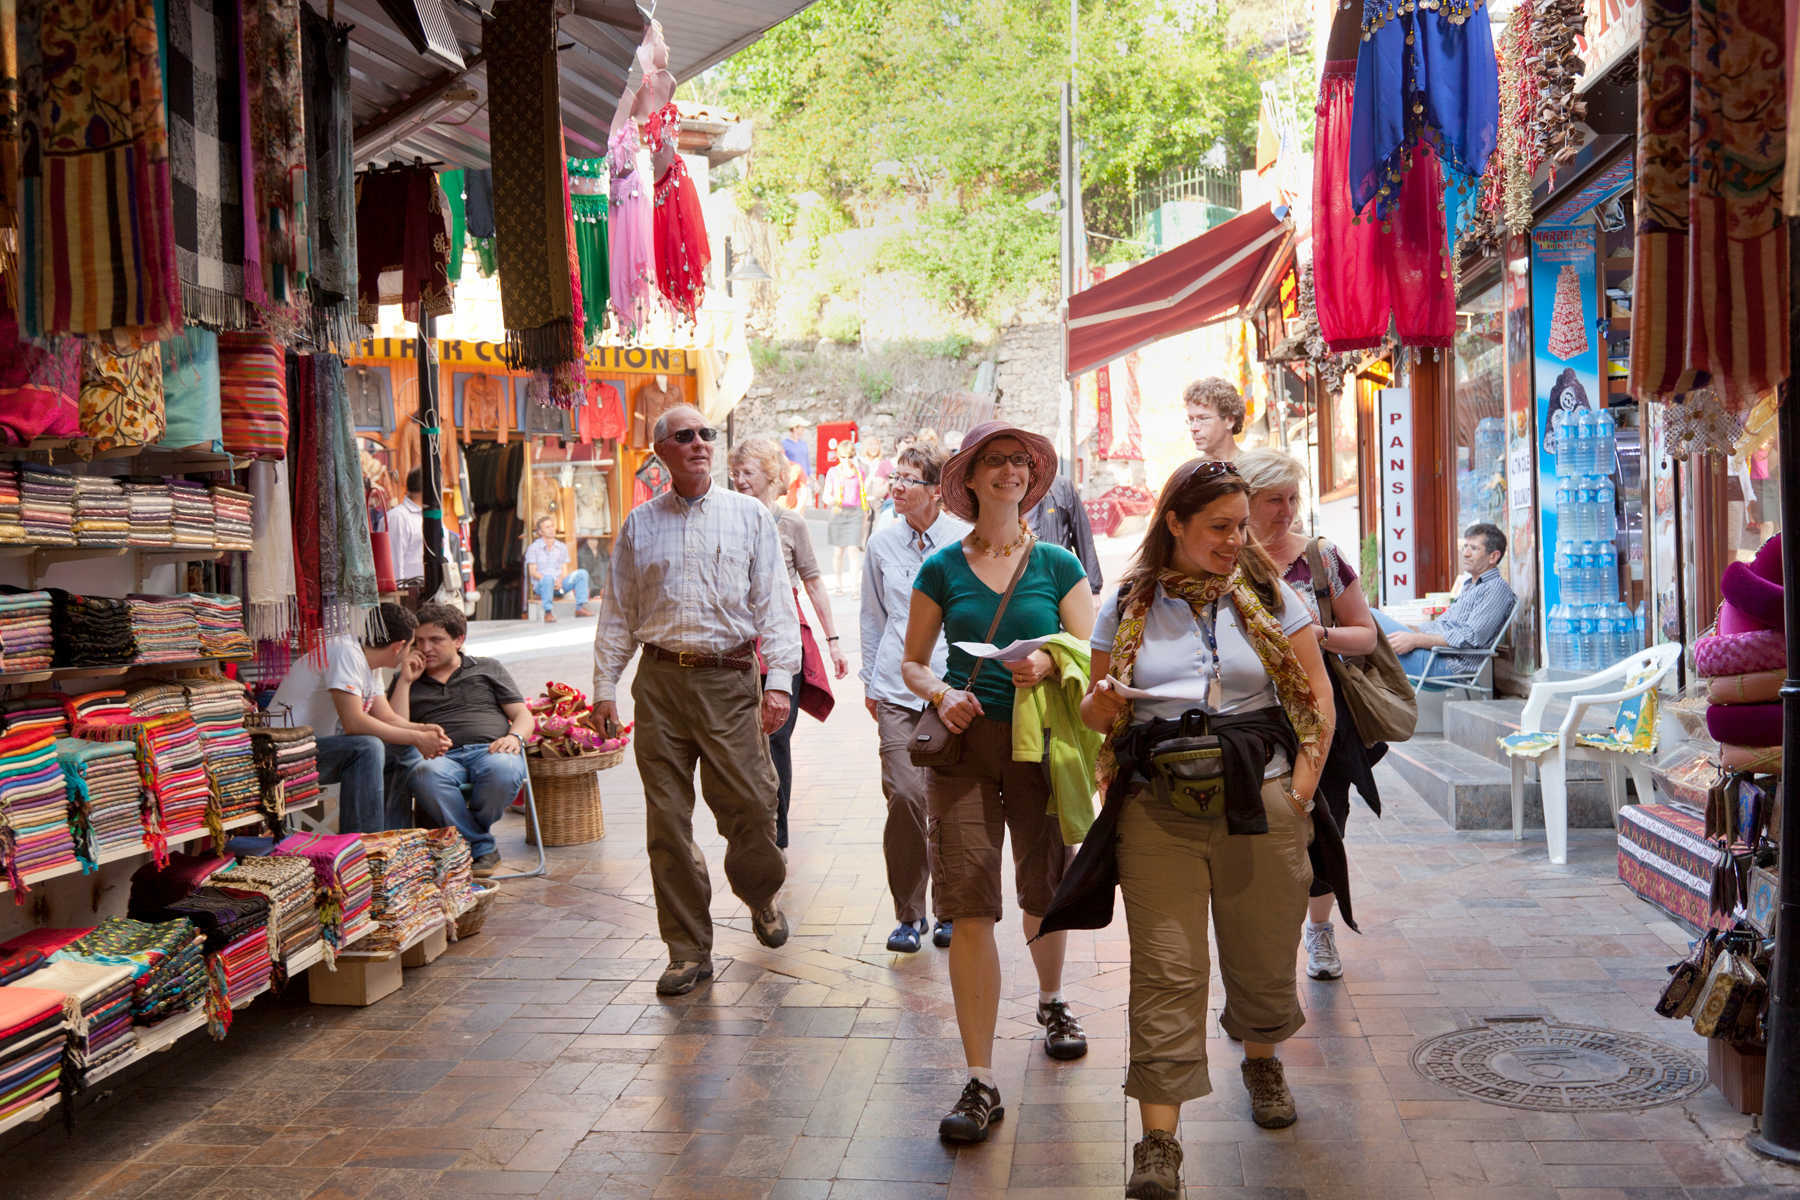 Tourists in Market, Antalya, Turkey